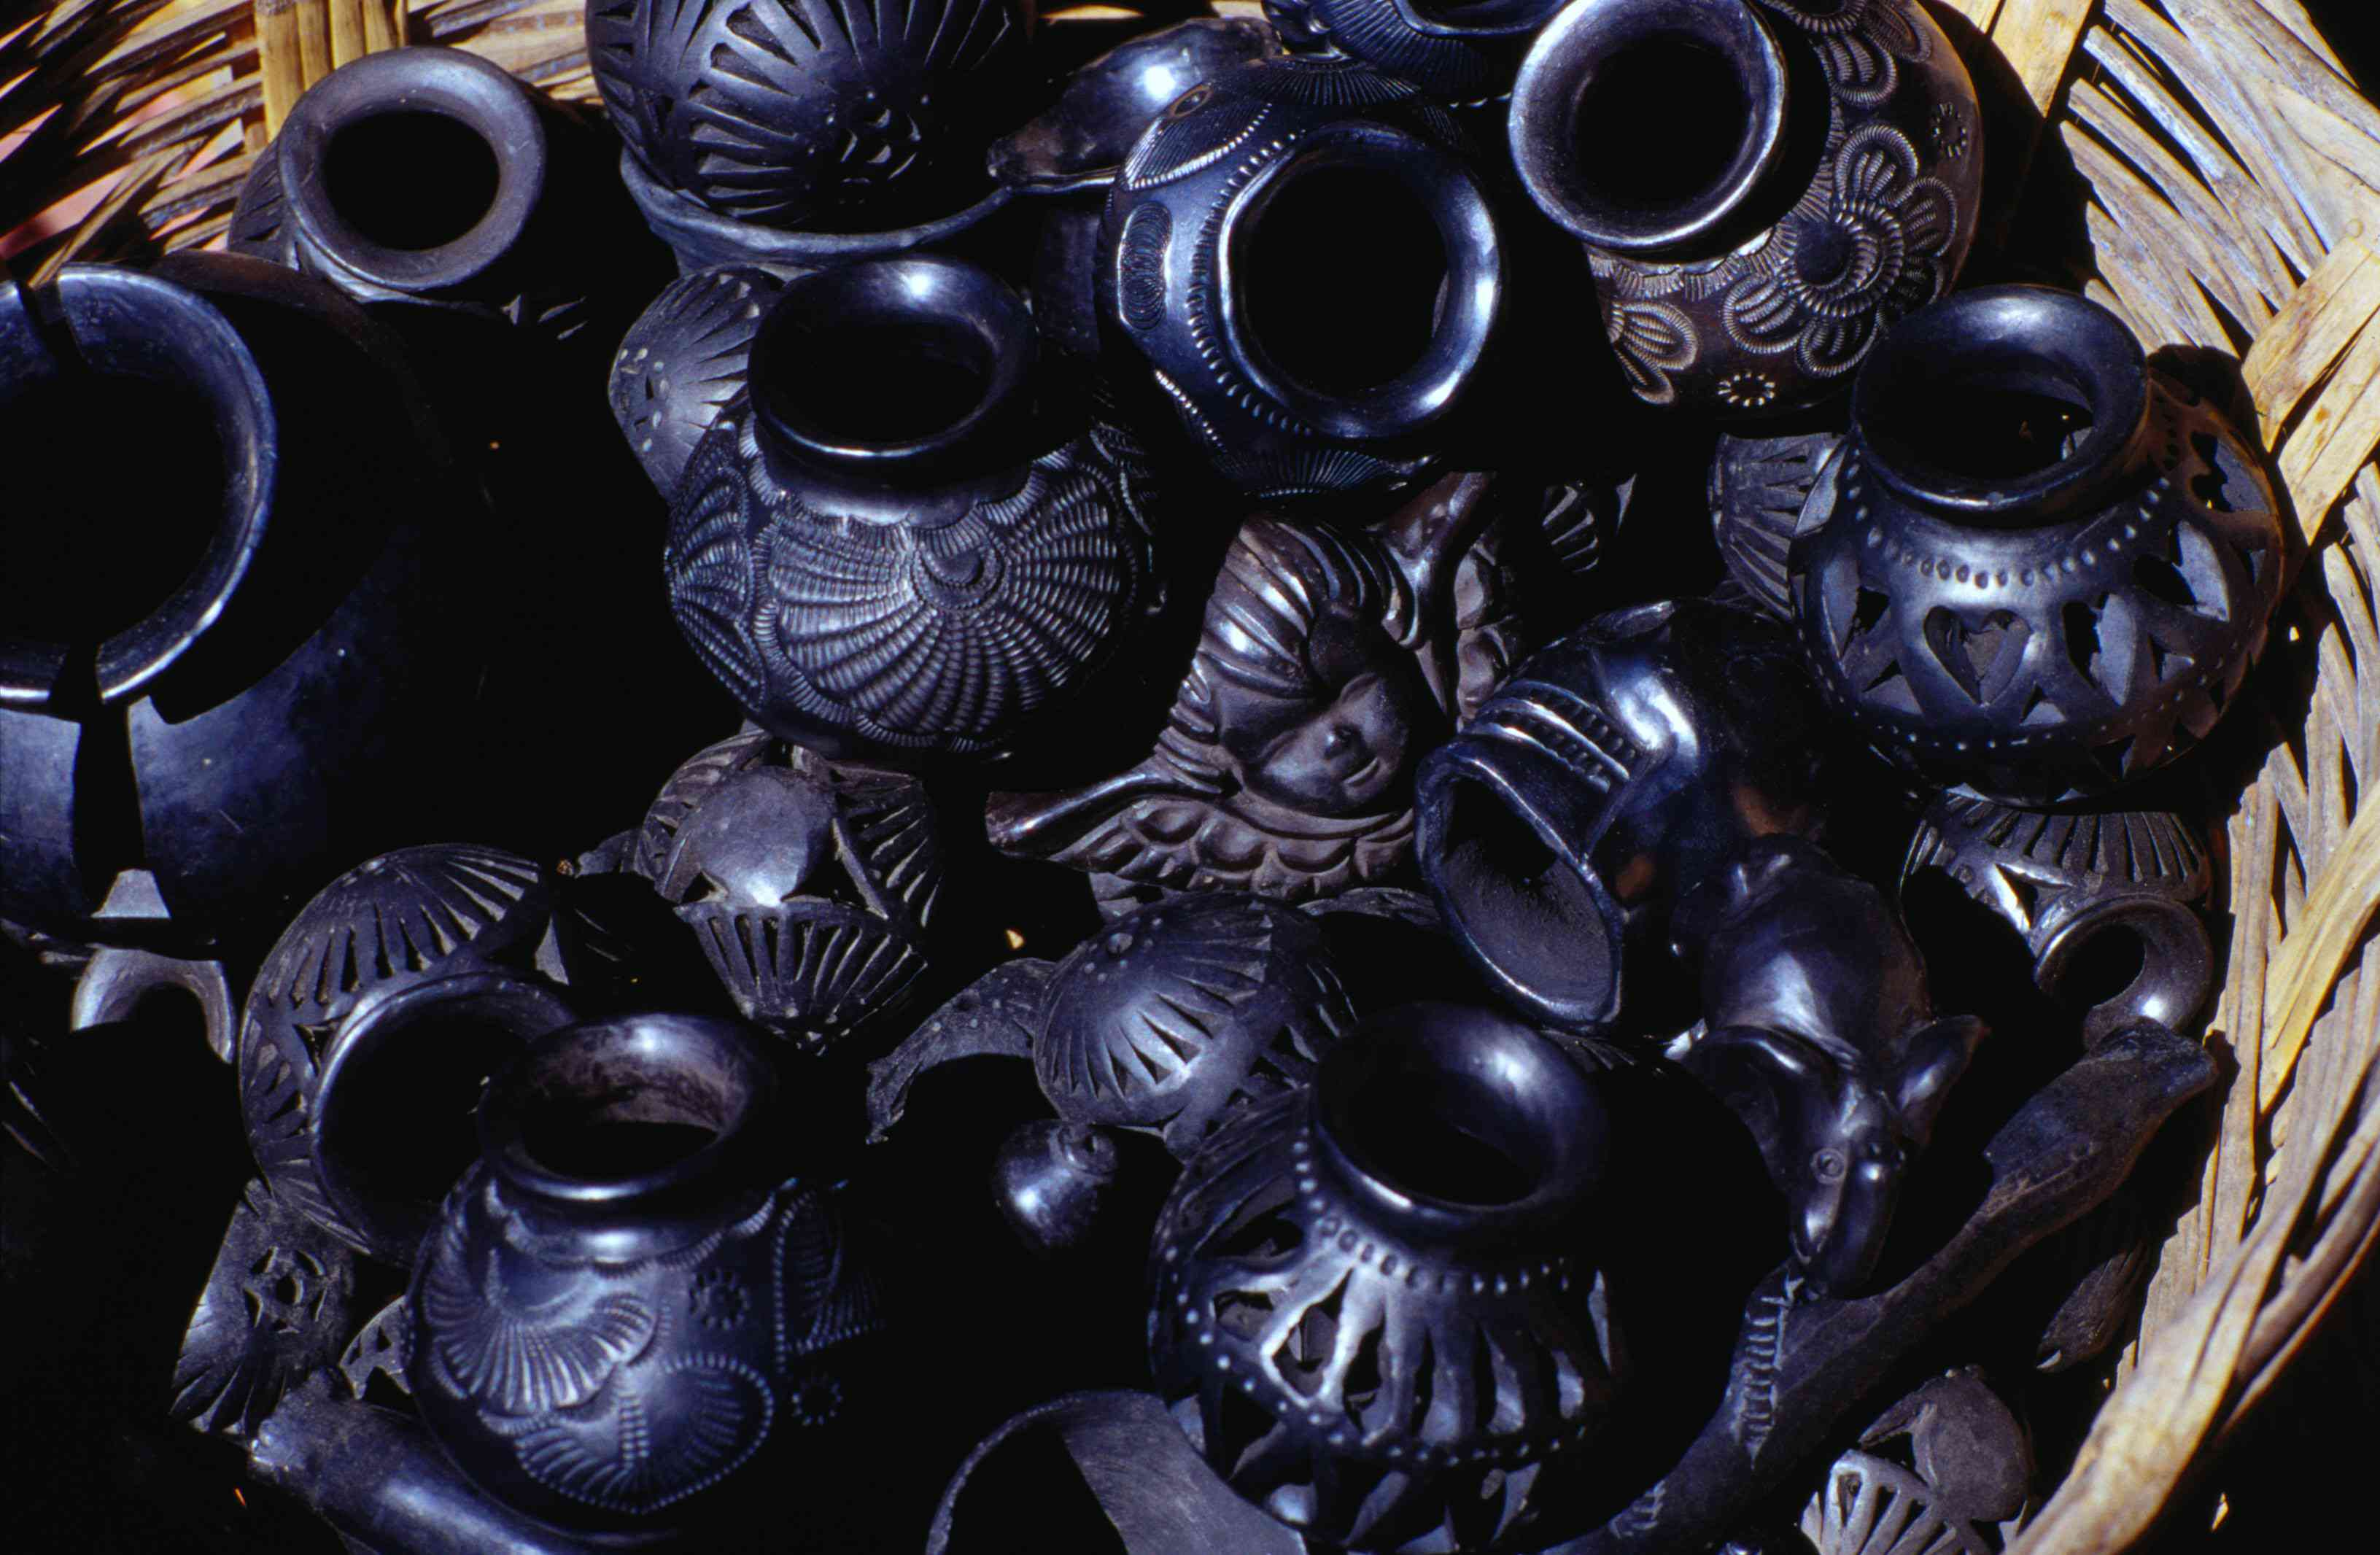 Polished black pottery in a woven pasket at the Dona Rosa workshop